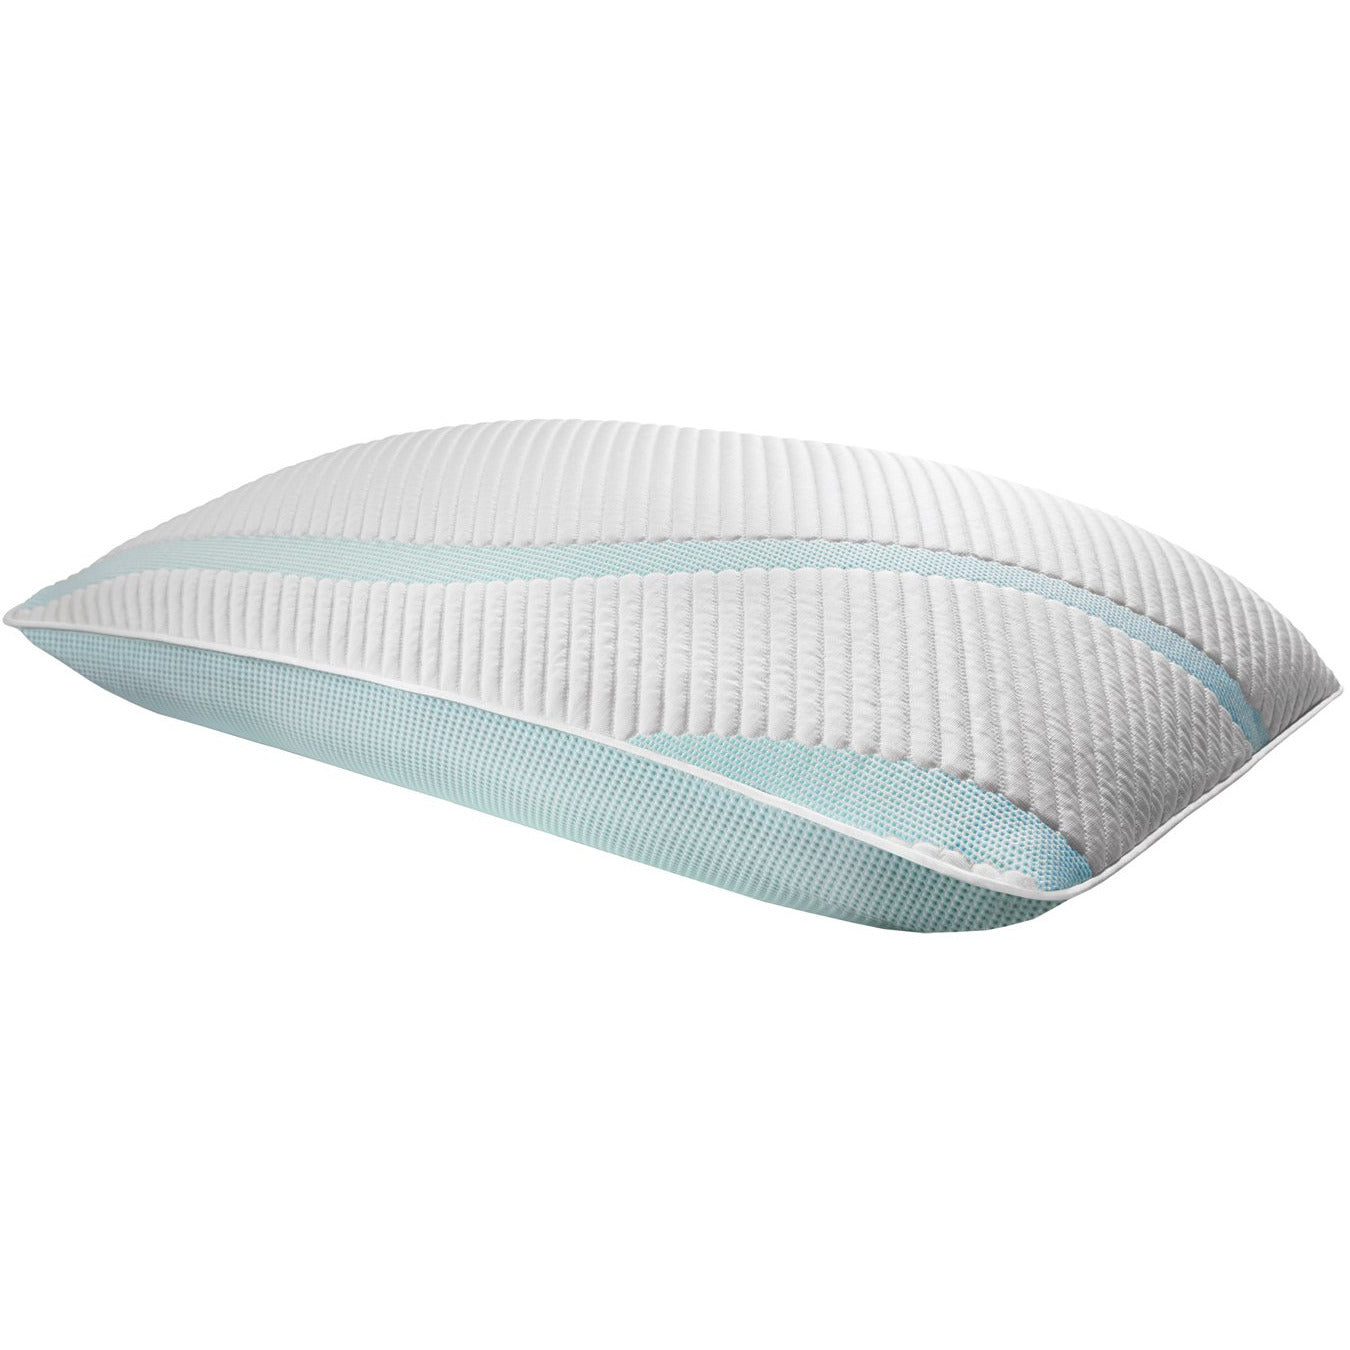 TEMPUR-Adapt® ProMid + Cooling Pillow